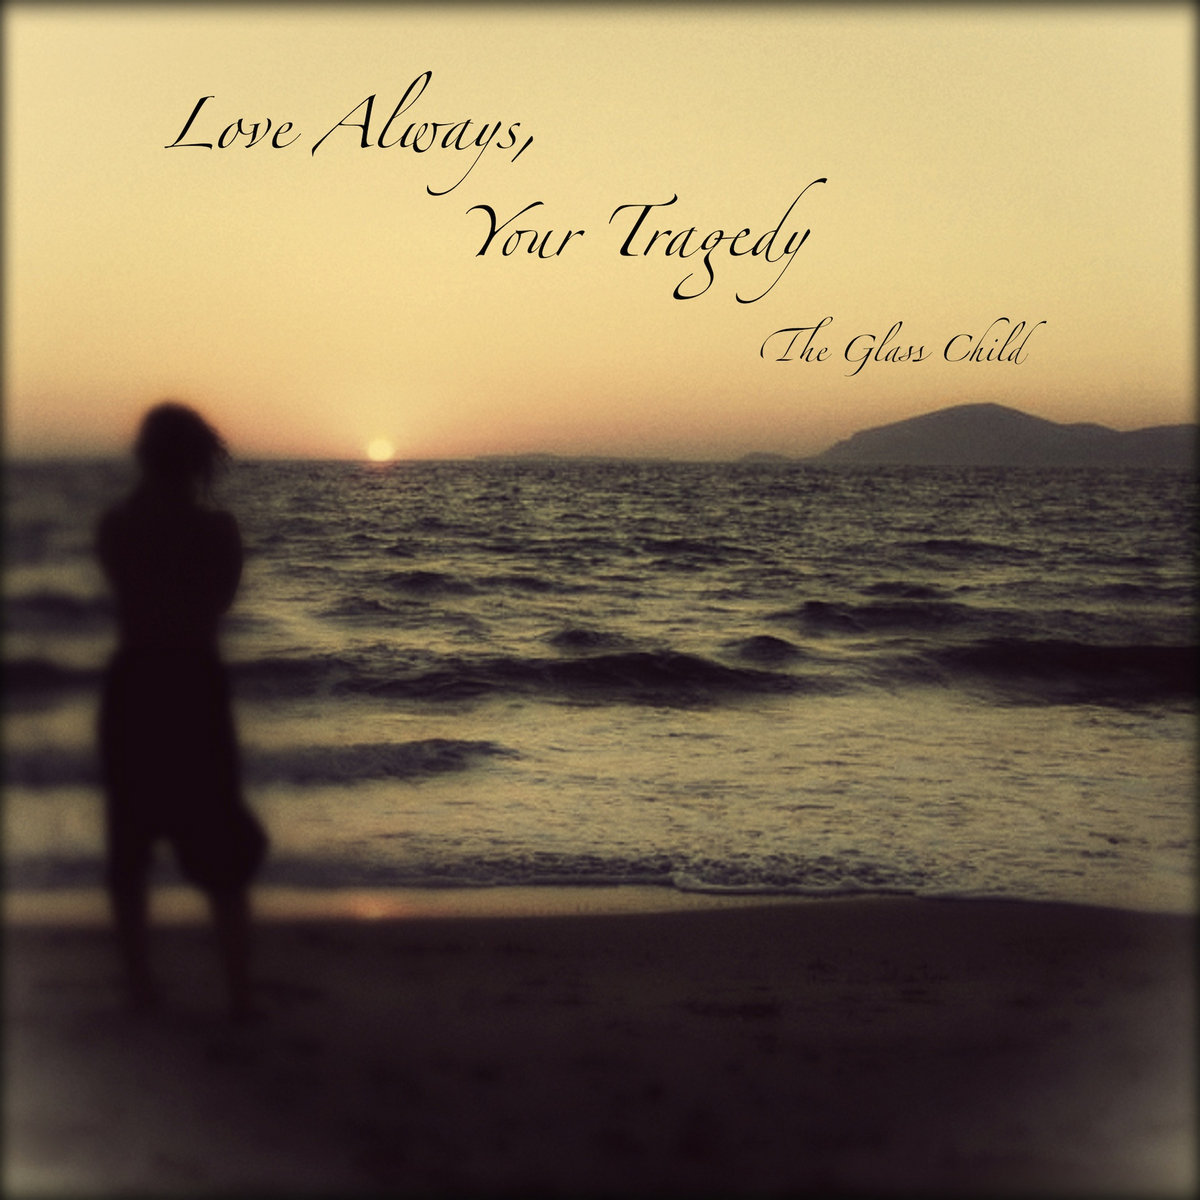 Love Tragedy Images Love Always Your Tragedy